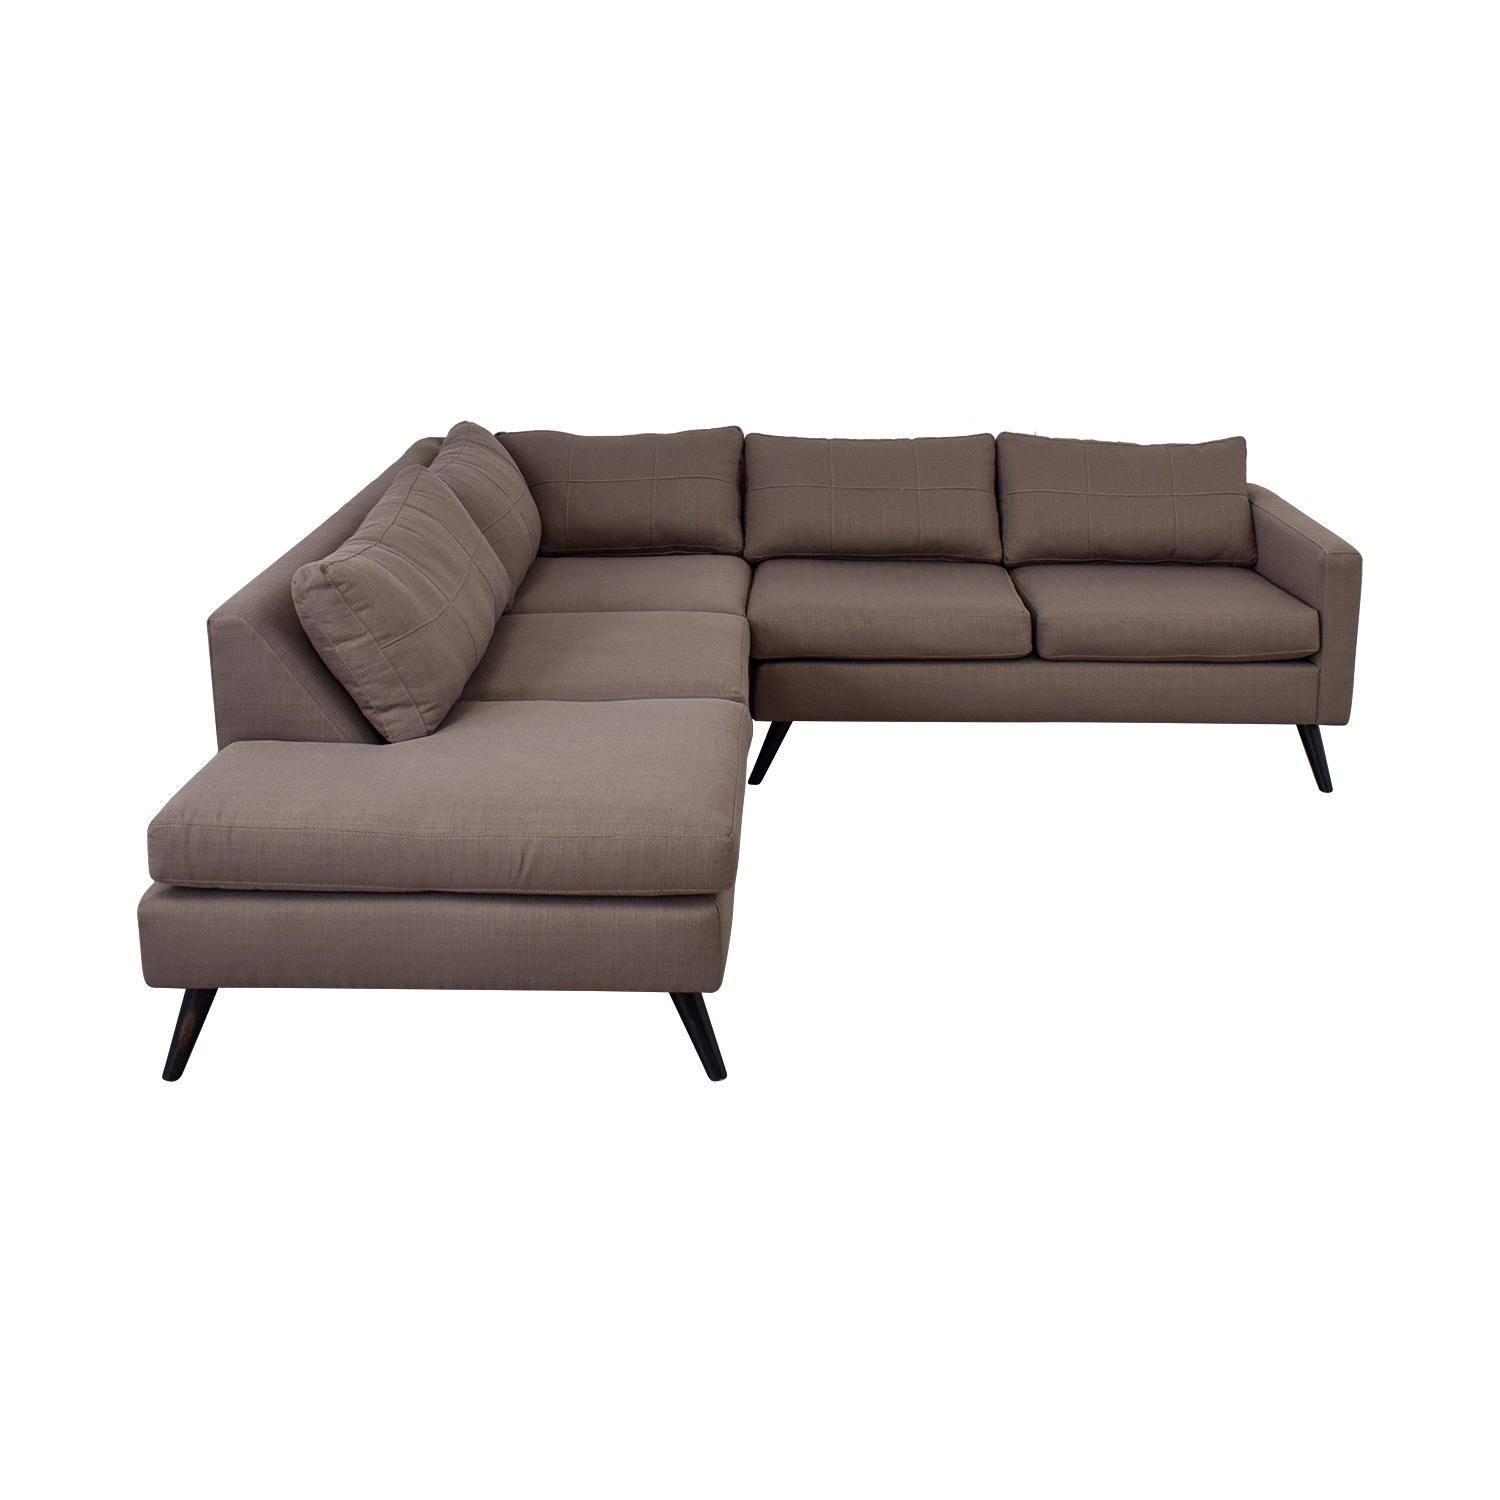 shop TrueModern Dane Grey L-Shaped Sectional TrueModern